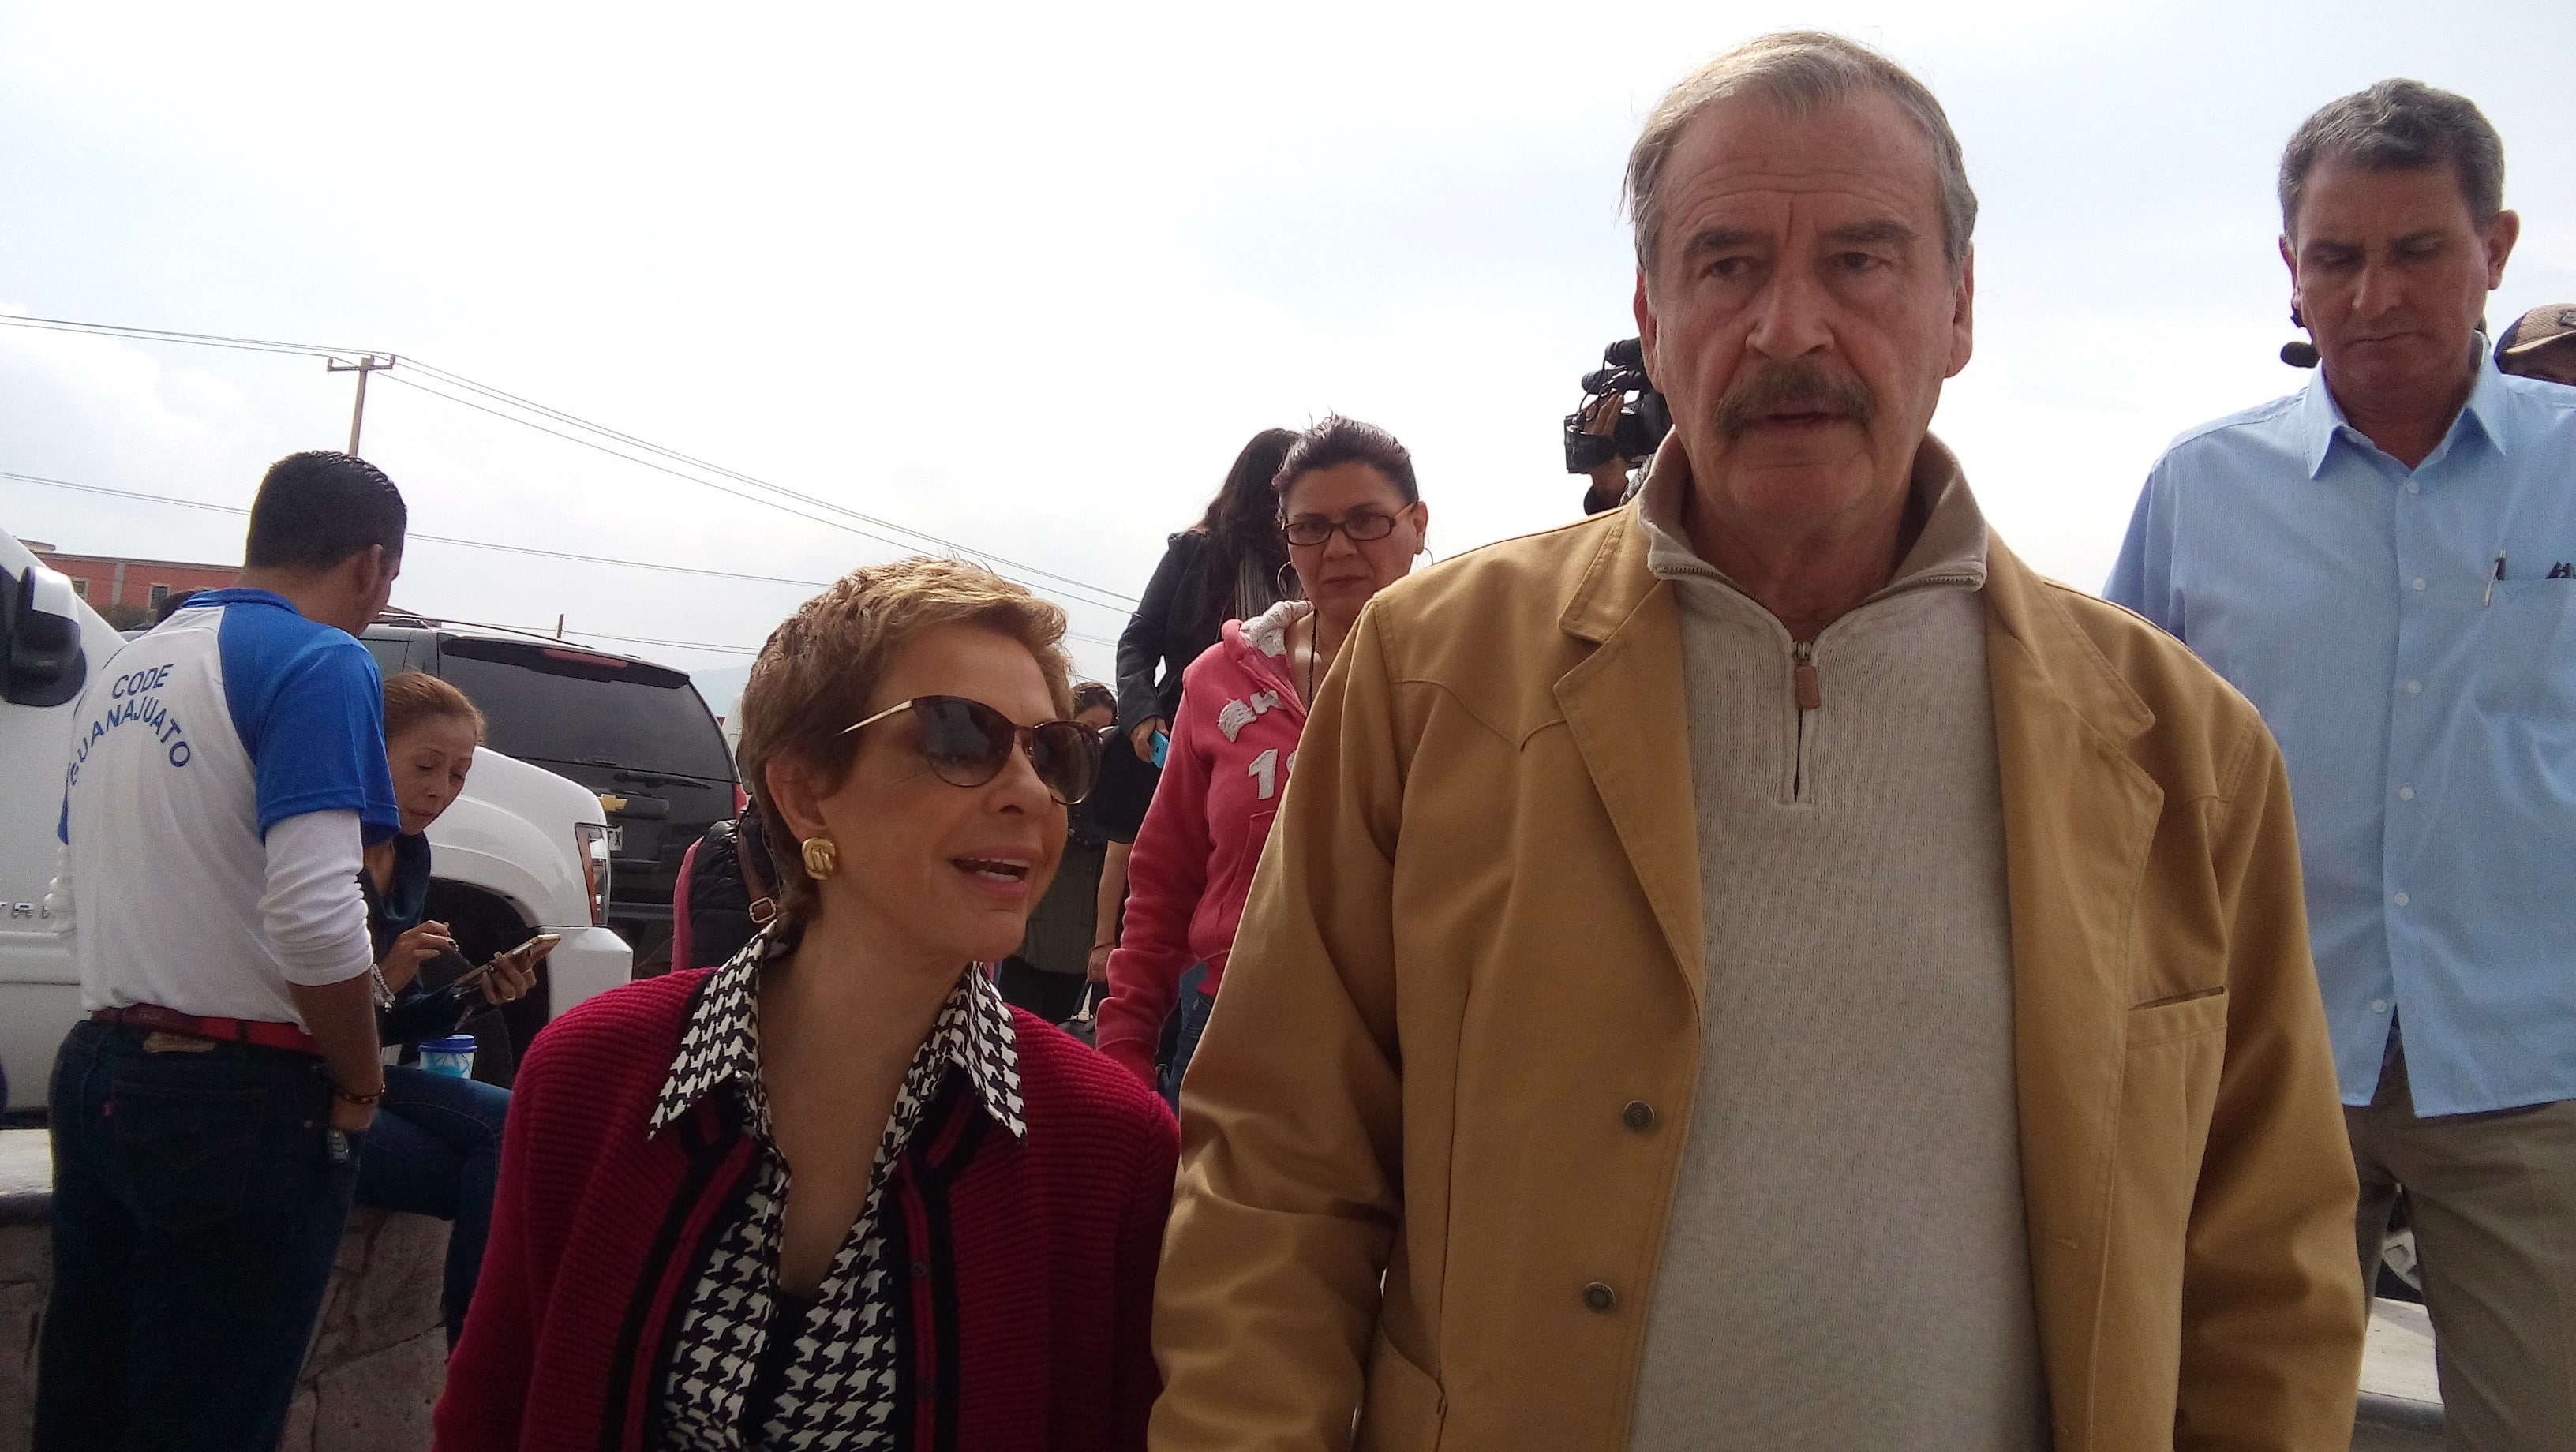 pgr-detras-vicente-fox-martha-sahagun